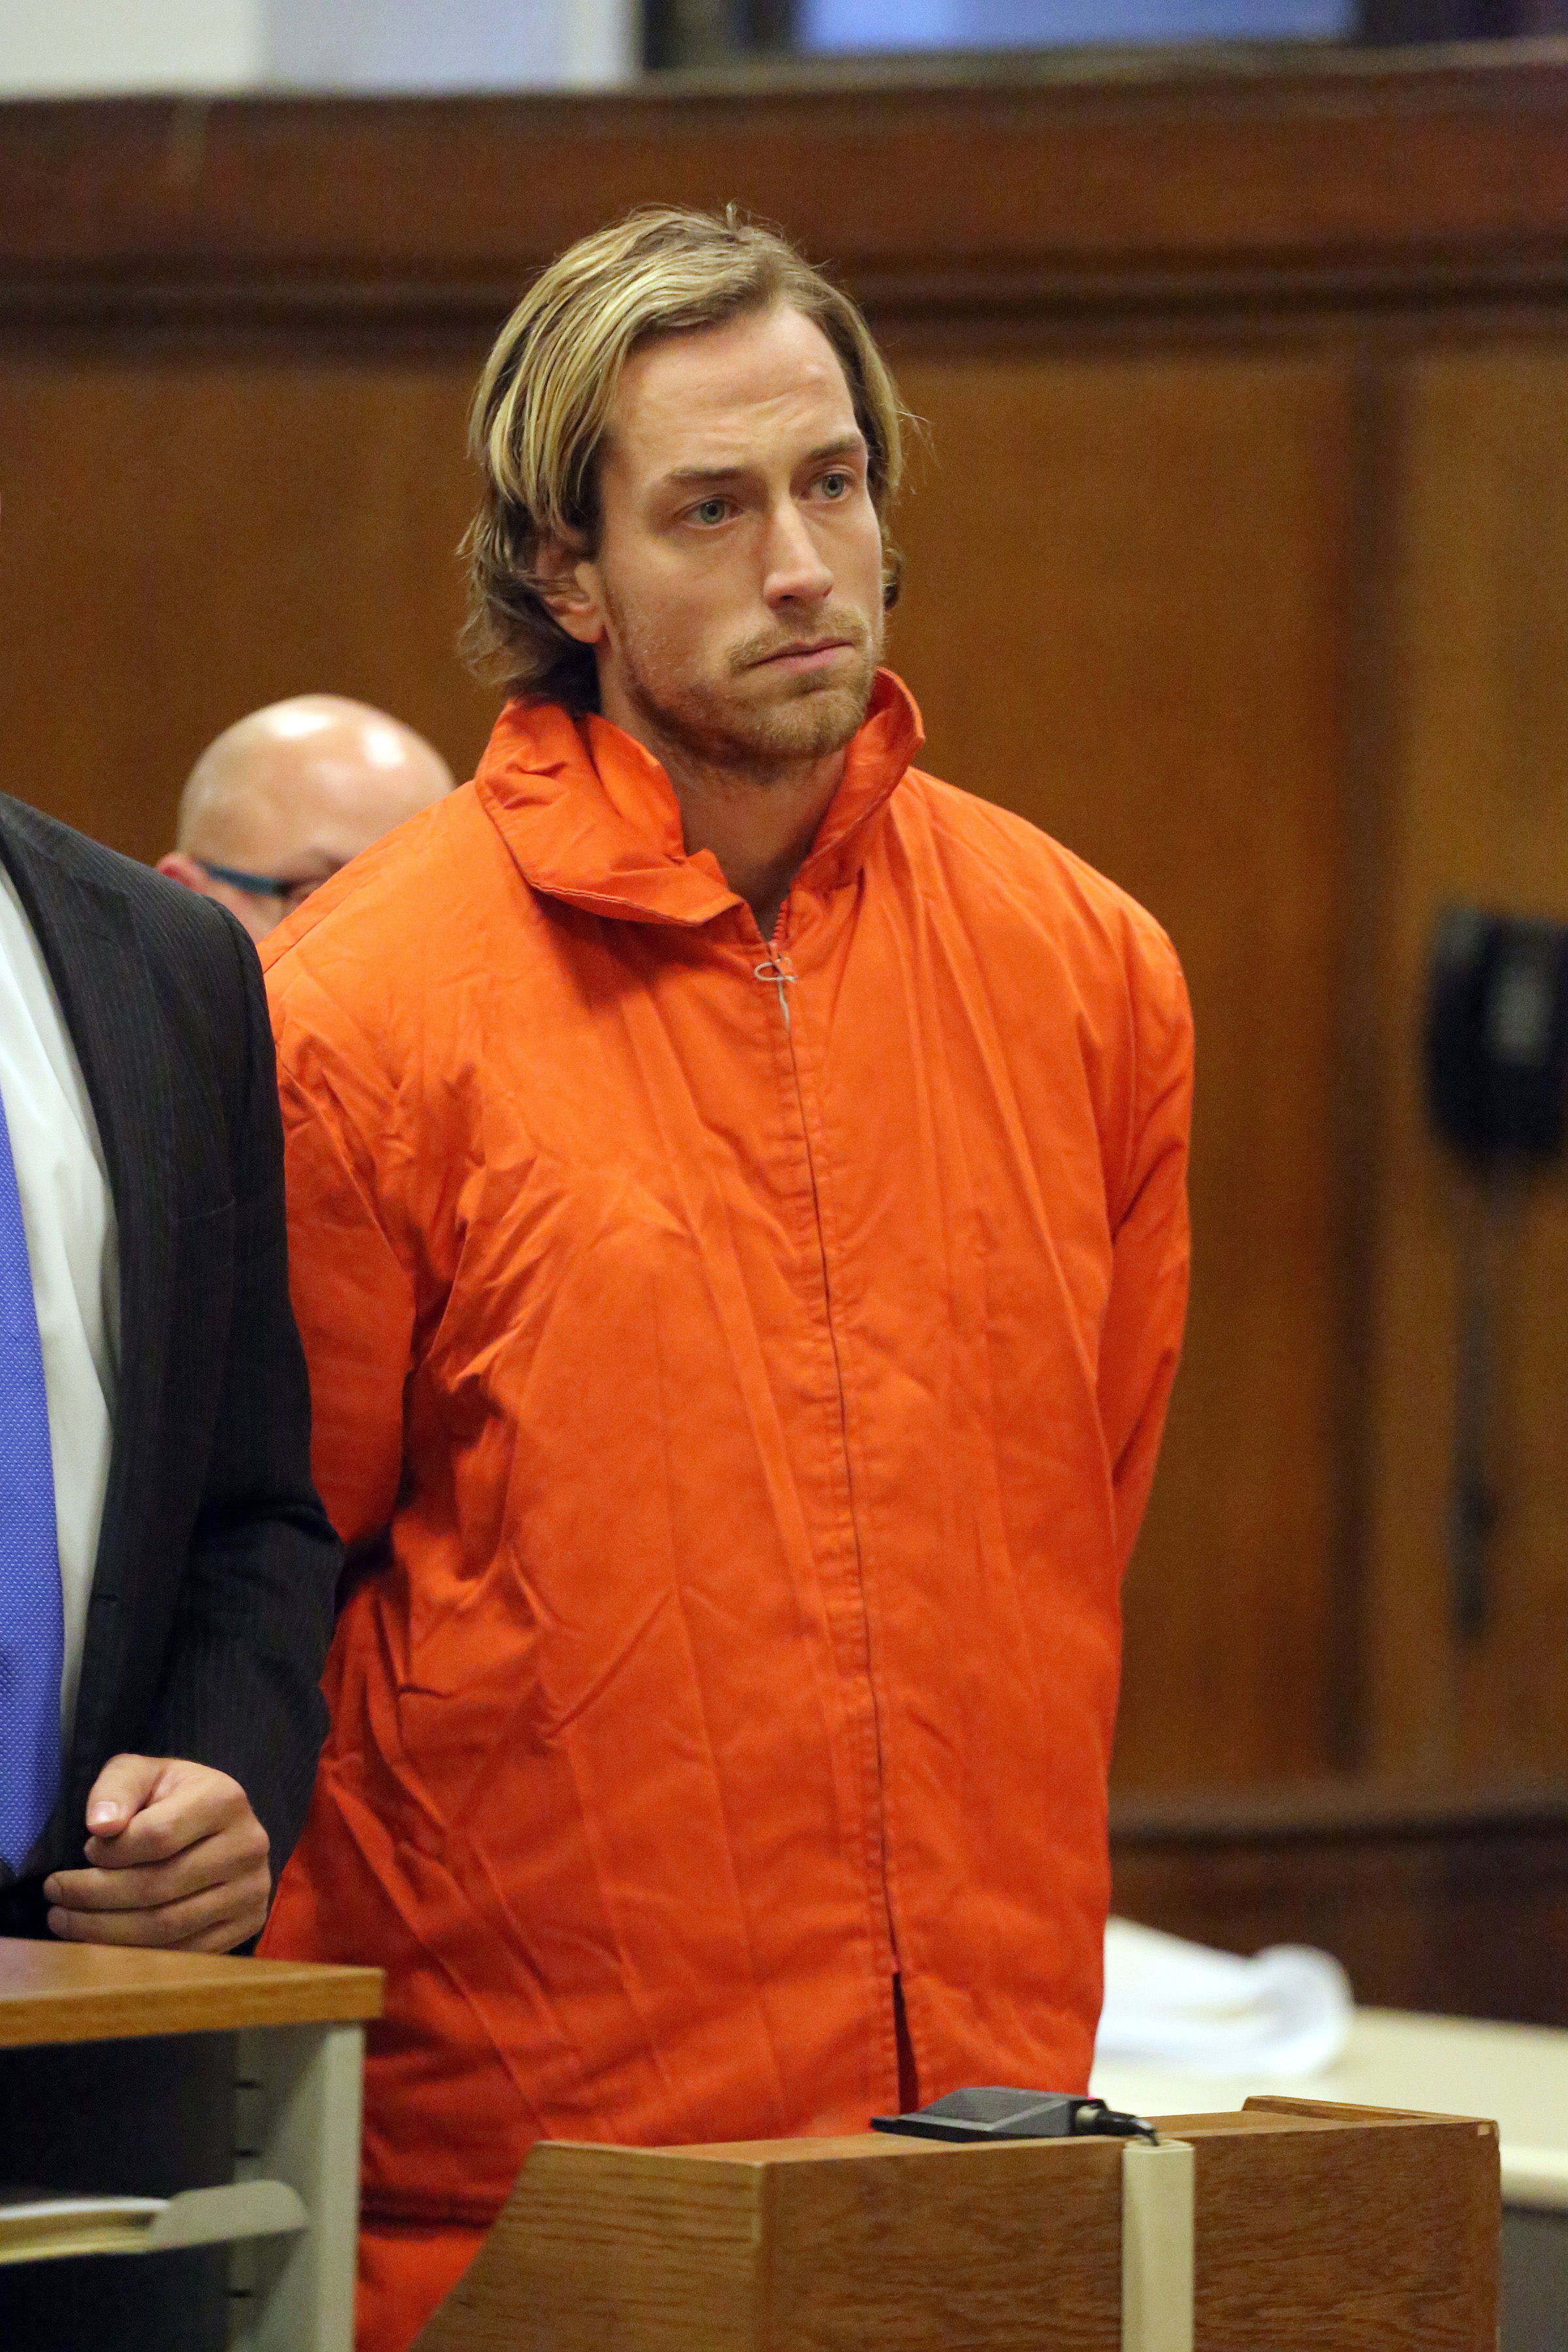 Thomas Gilbert, Jr. appeared in Manhattan Criminal Court on Friday, January 9, 2015.